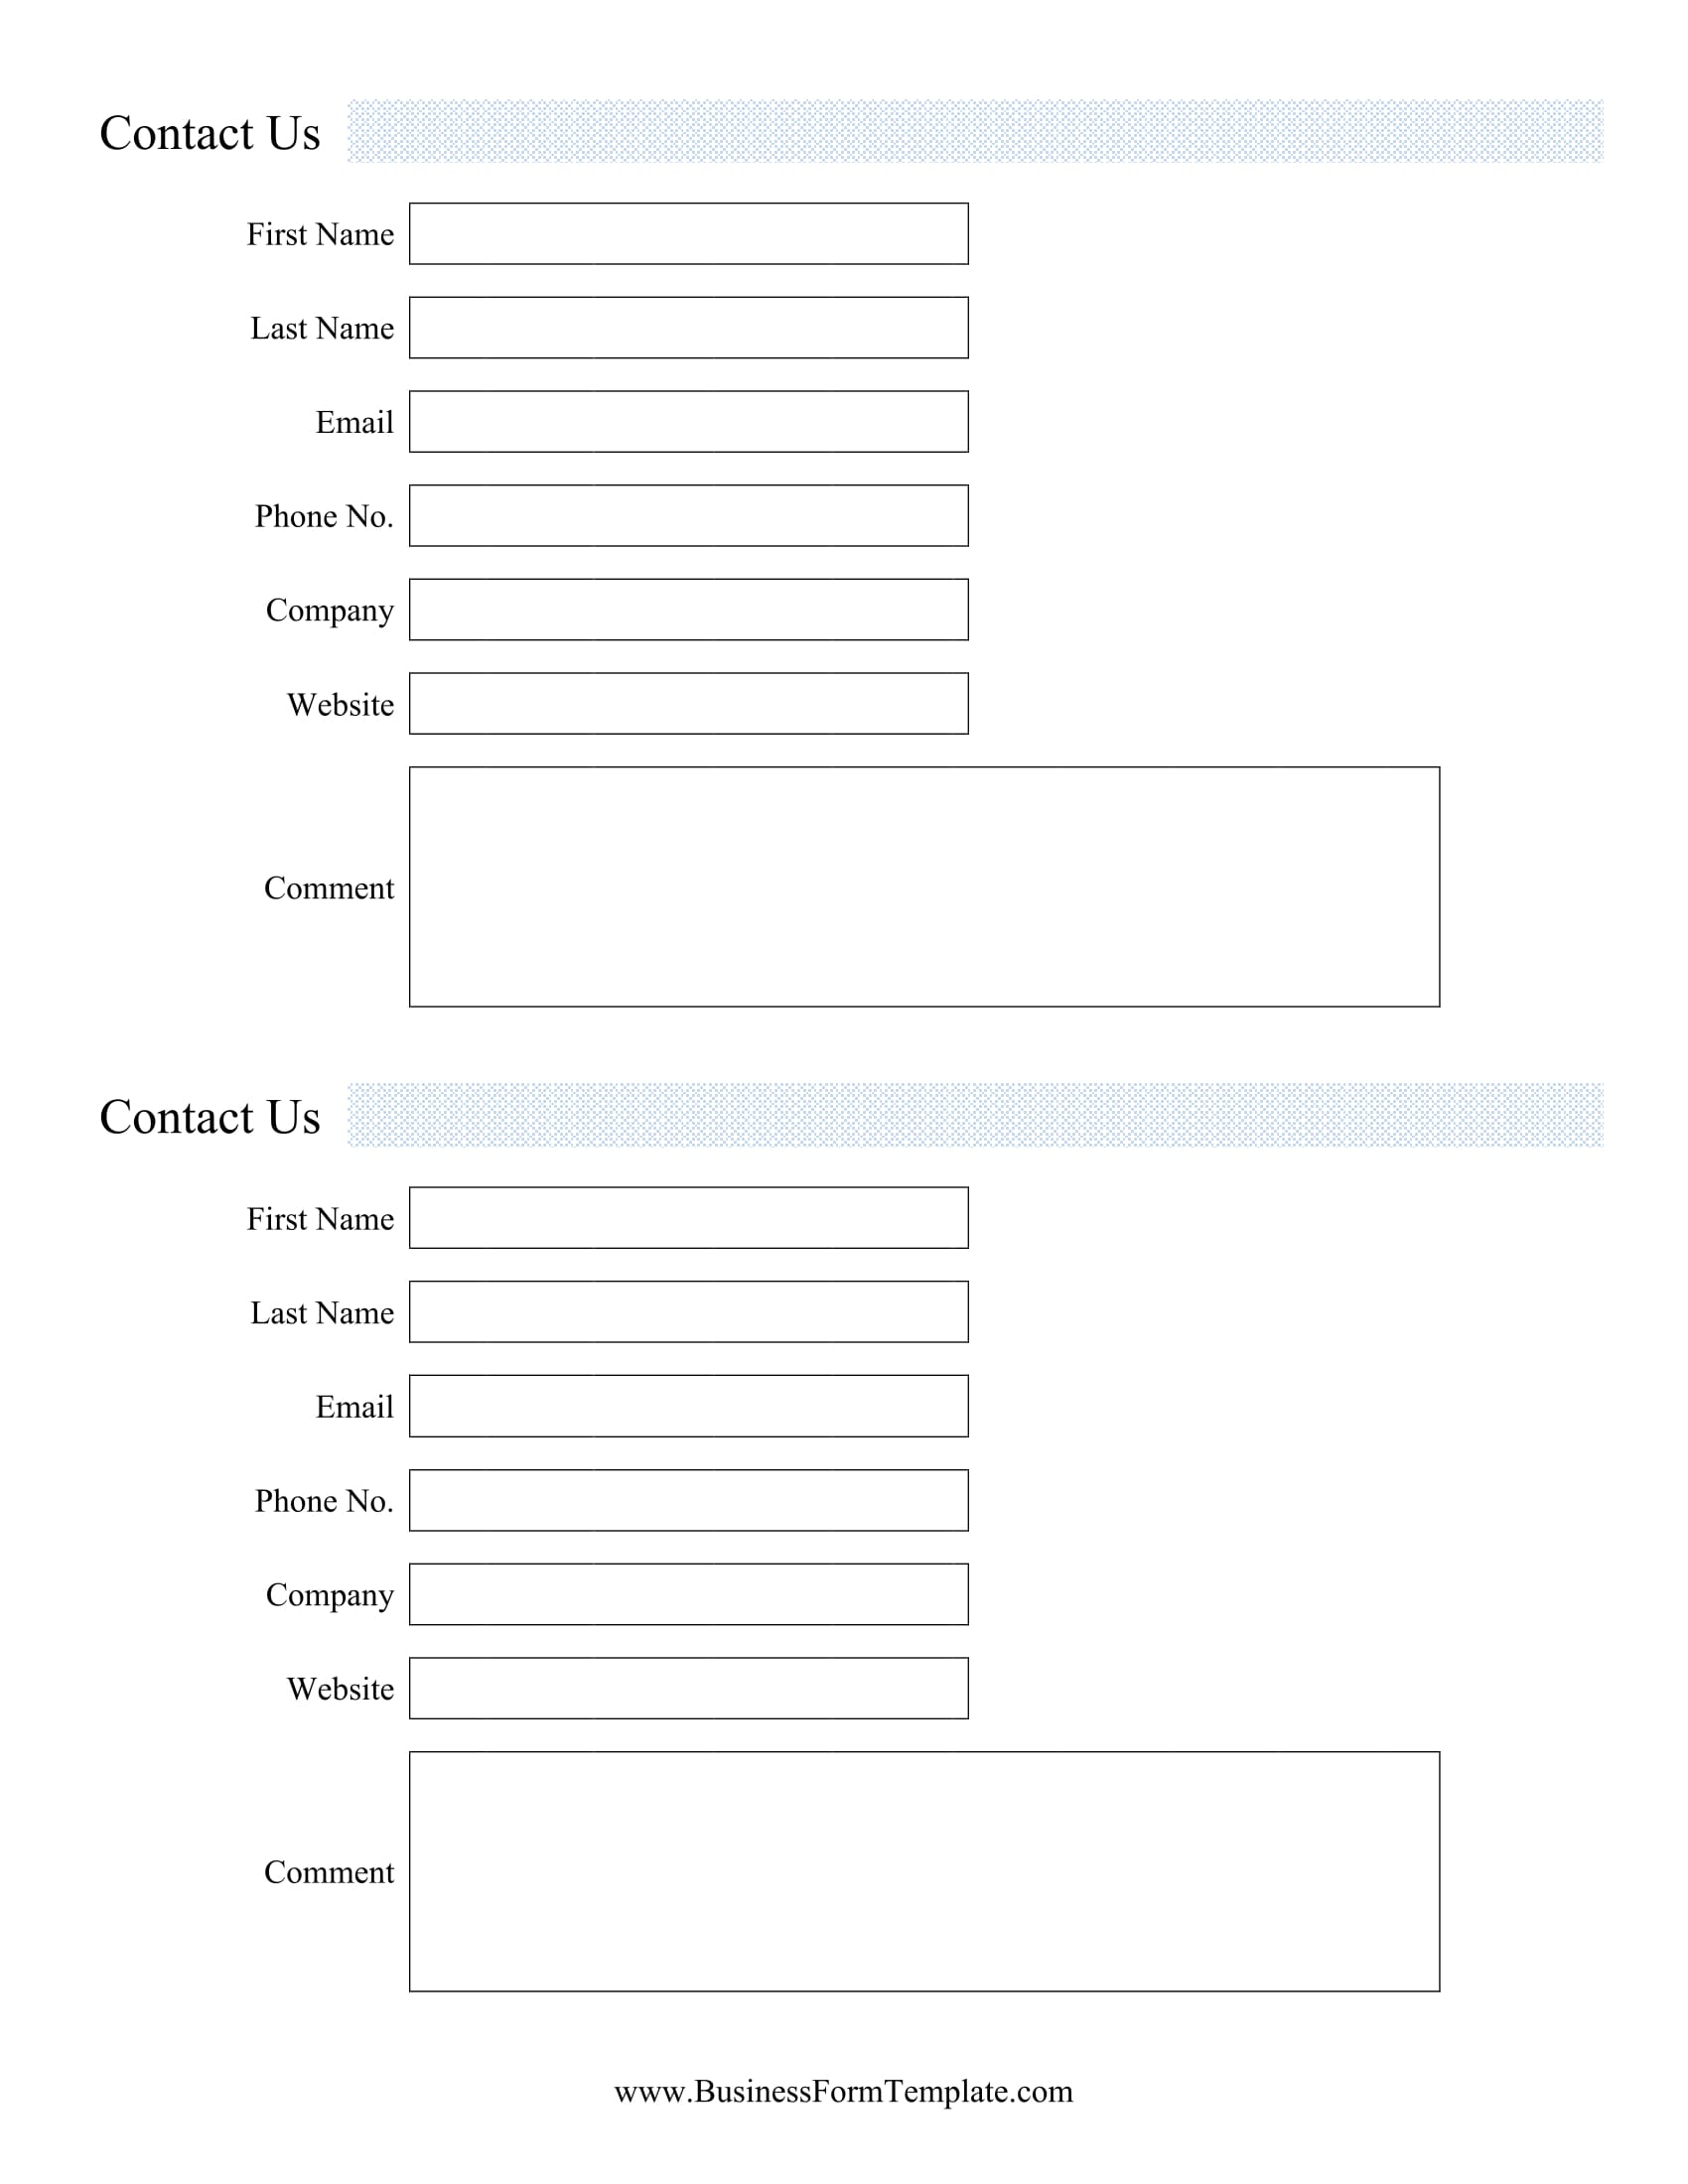 standard contact information form 1